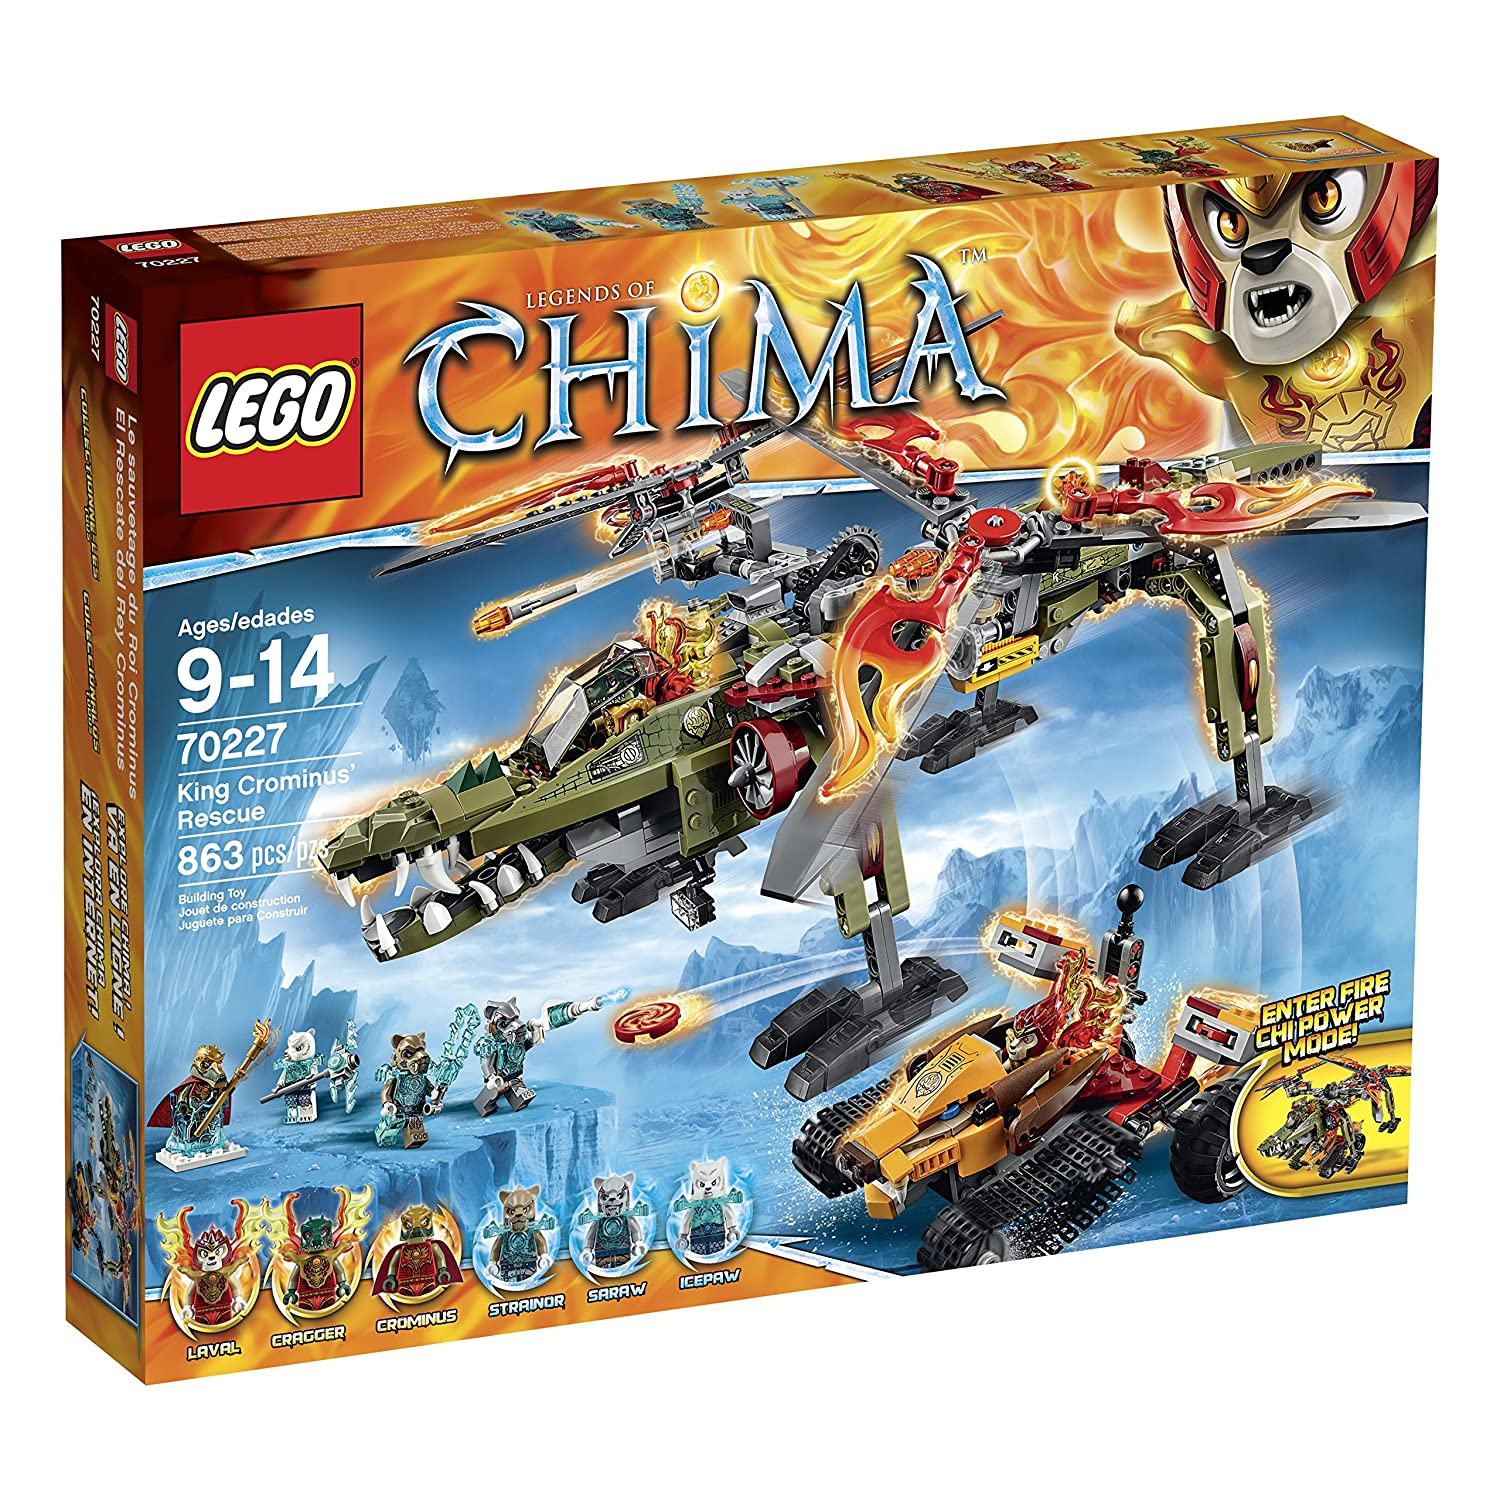 Top 9 Best LEGO Chima Sets Reviews in 2020 6